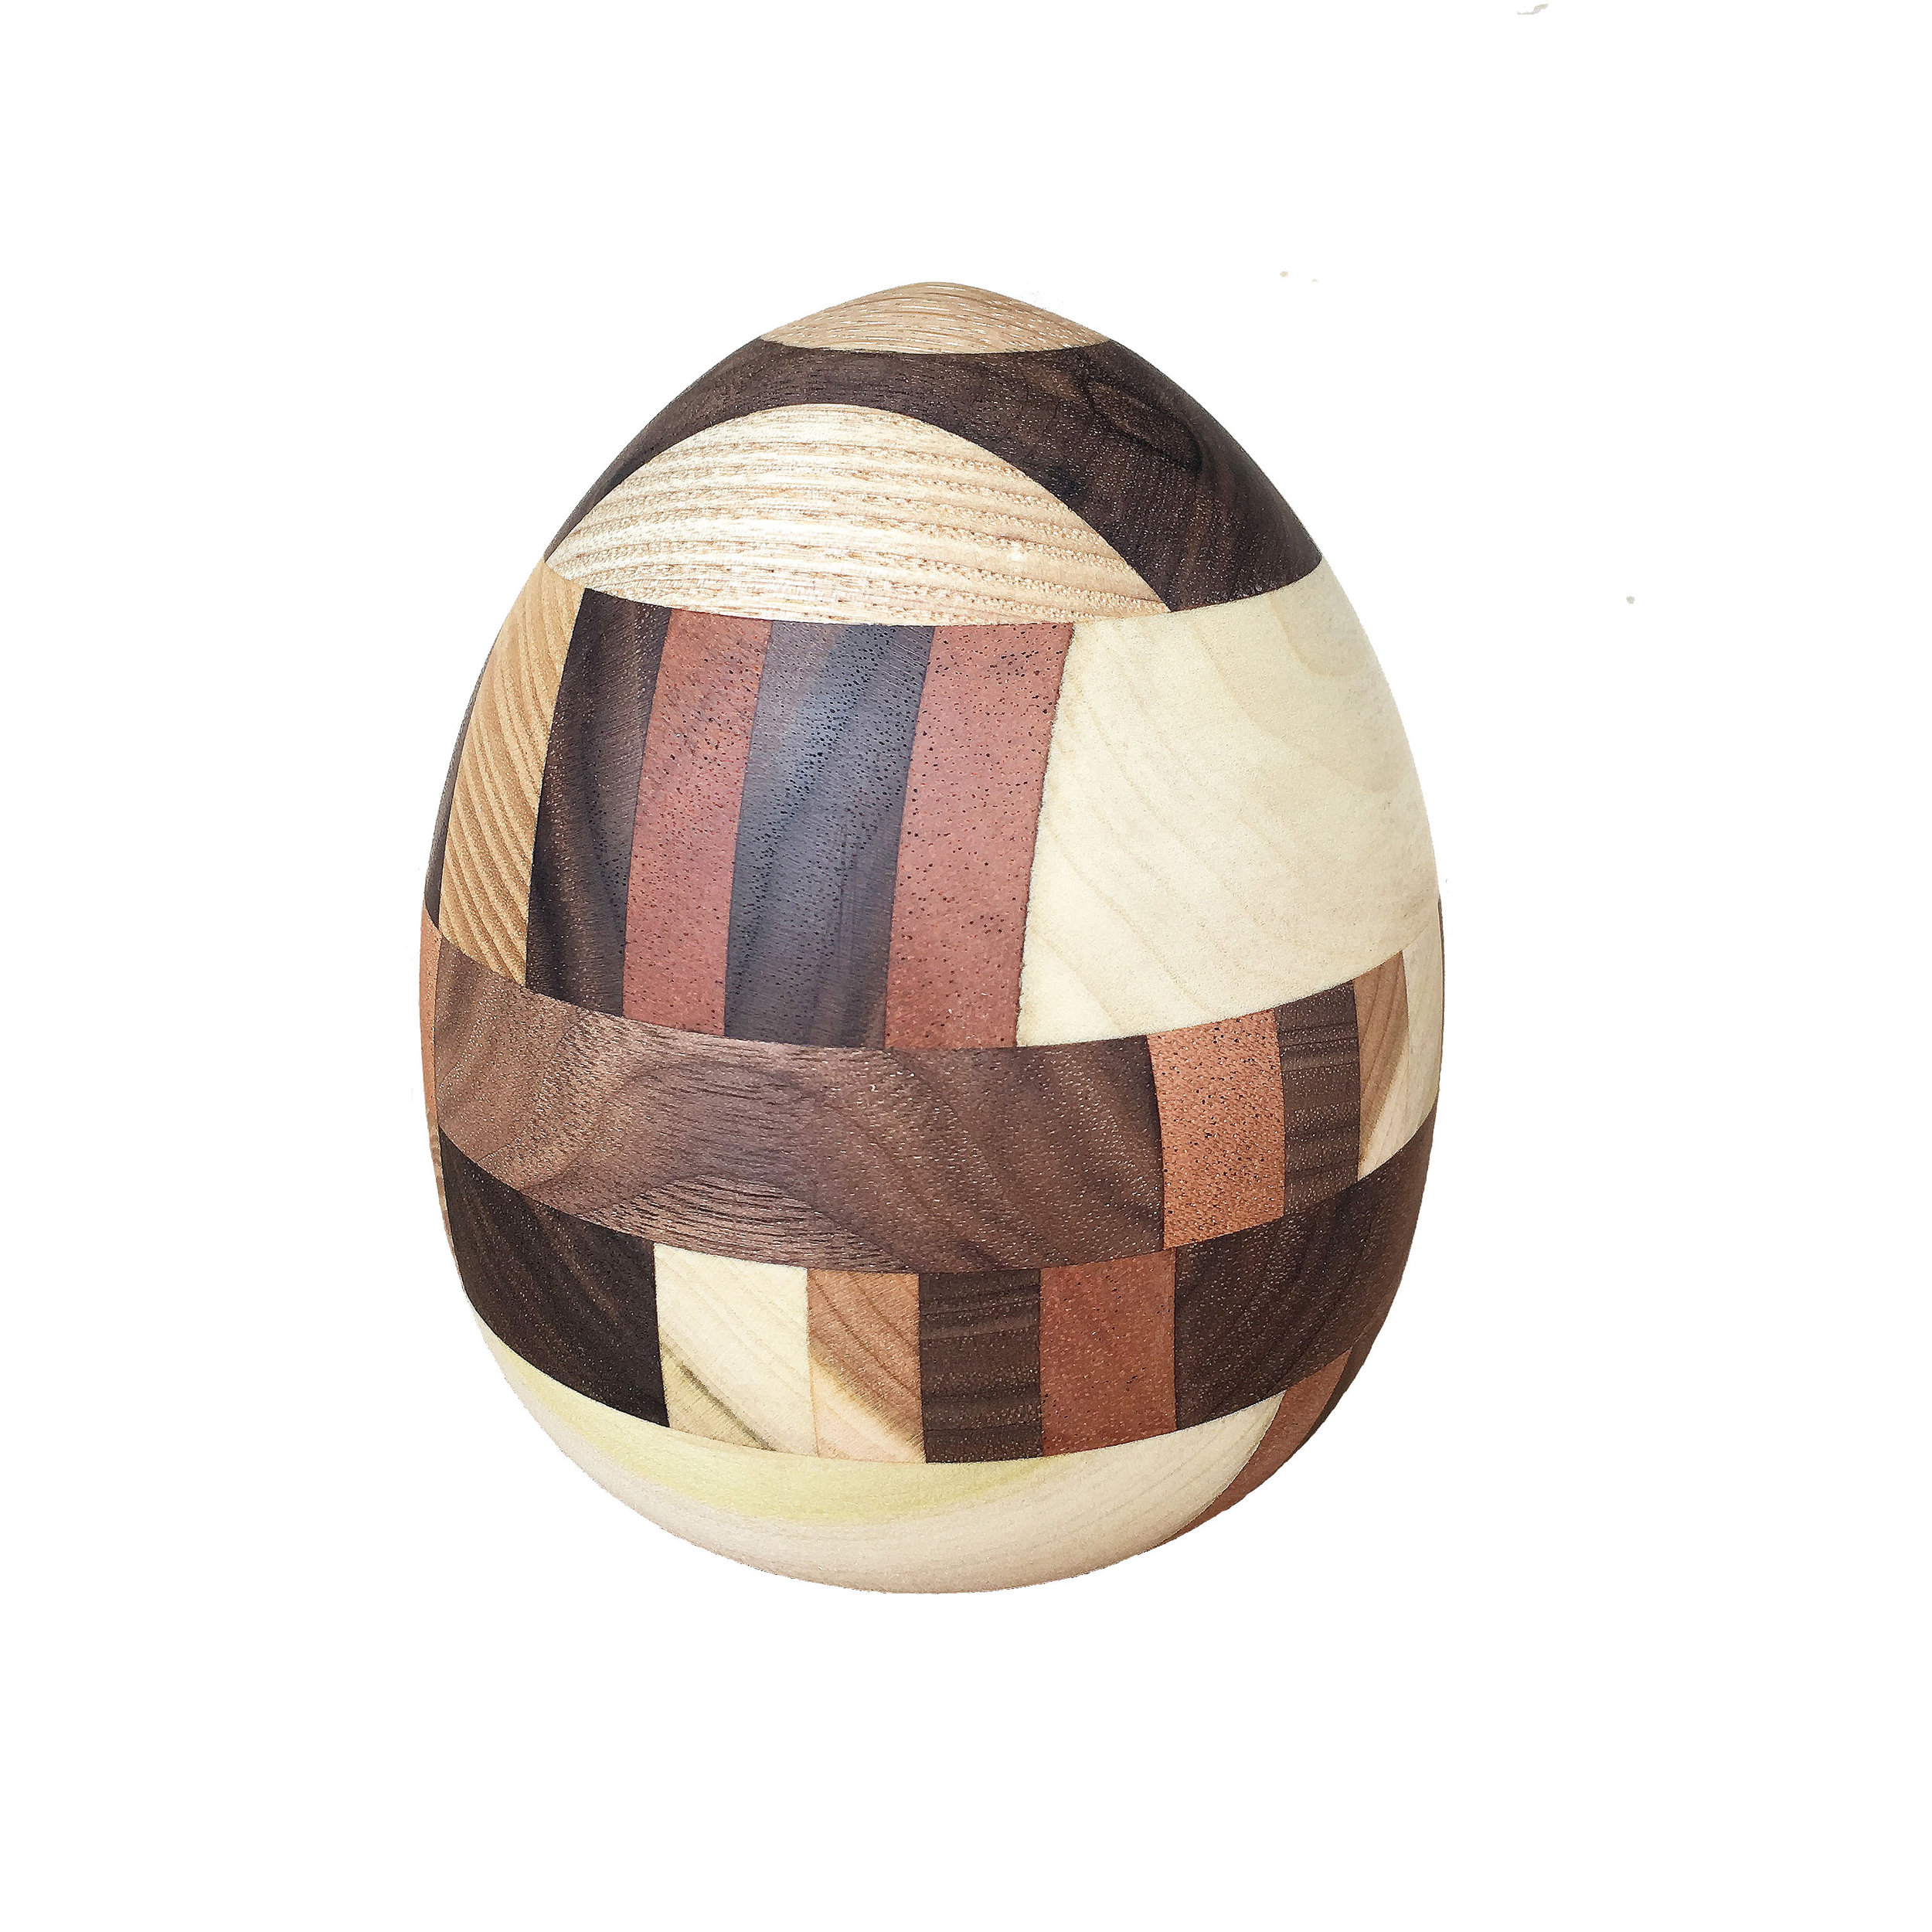 Original Color Egg, multiple woods, 2016